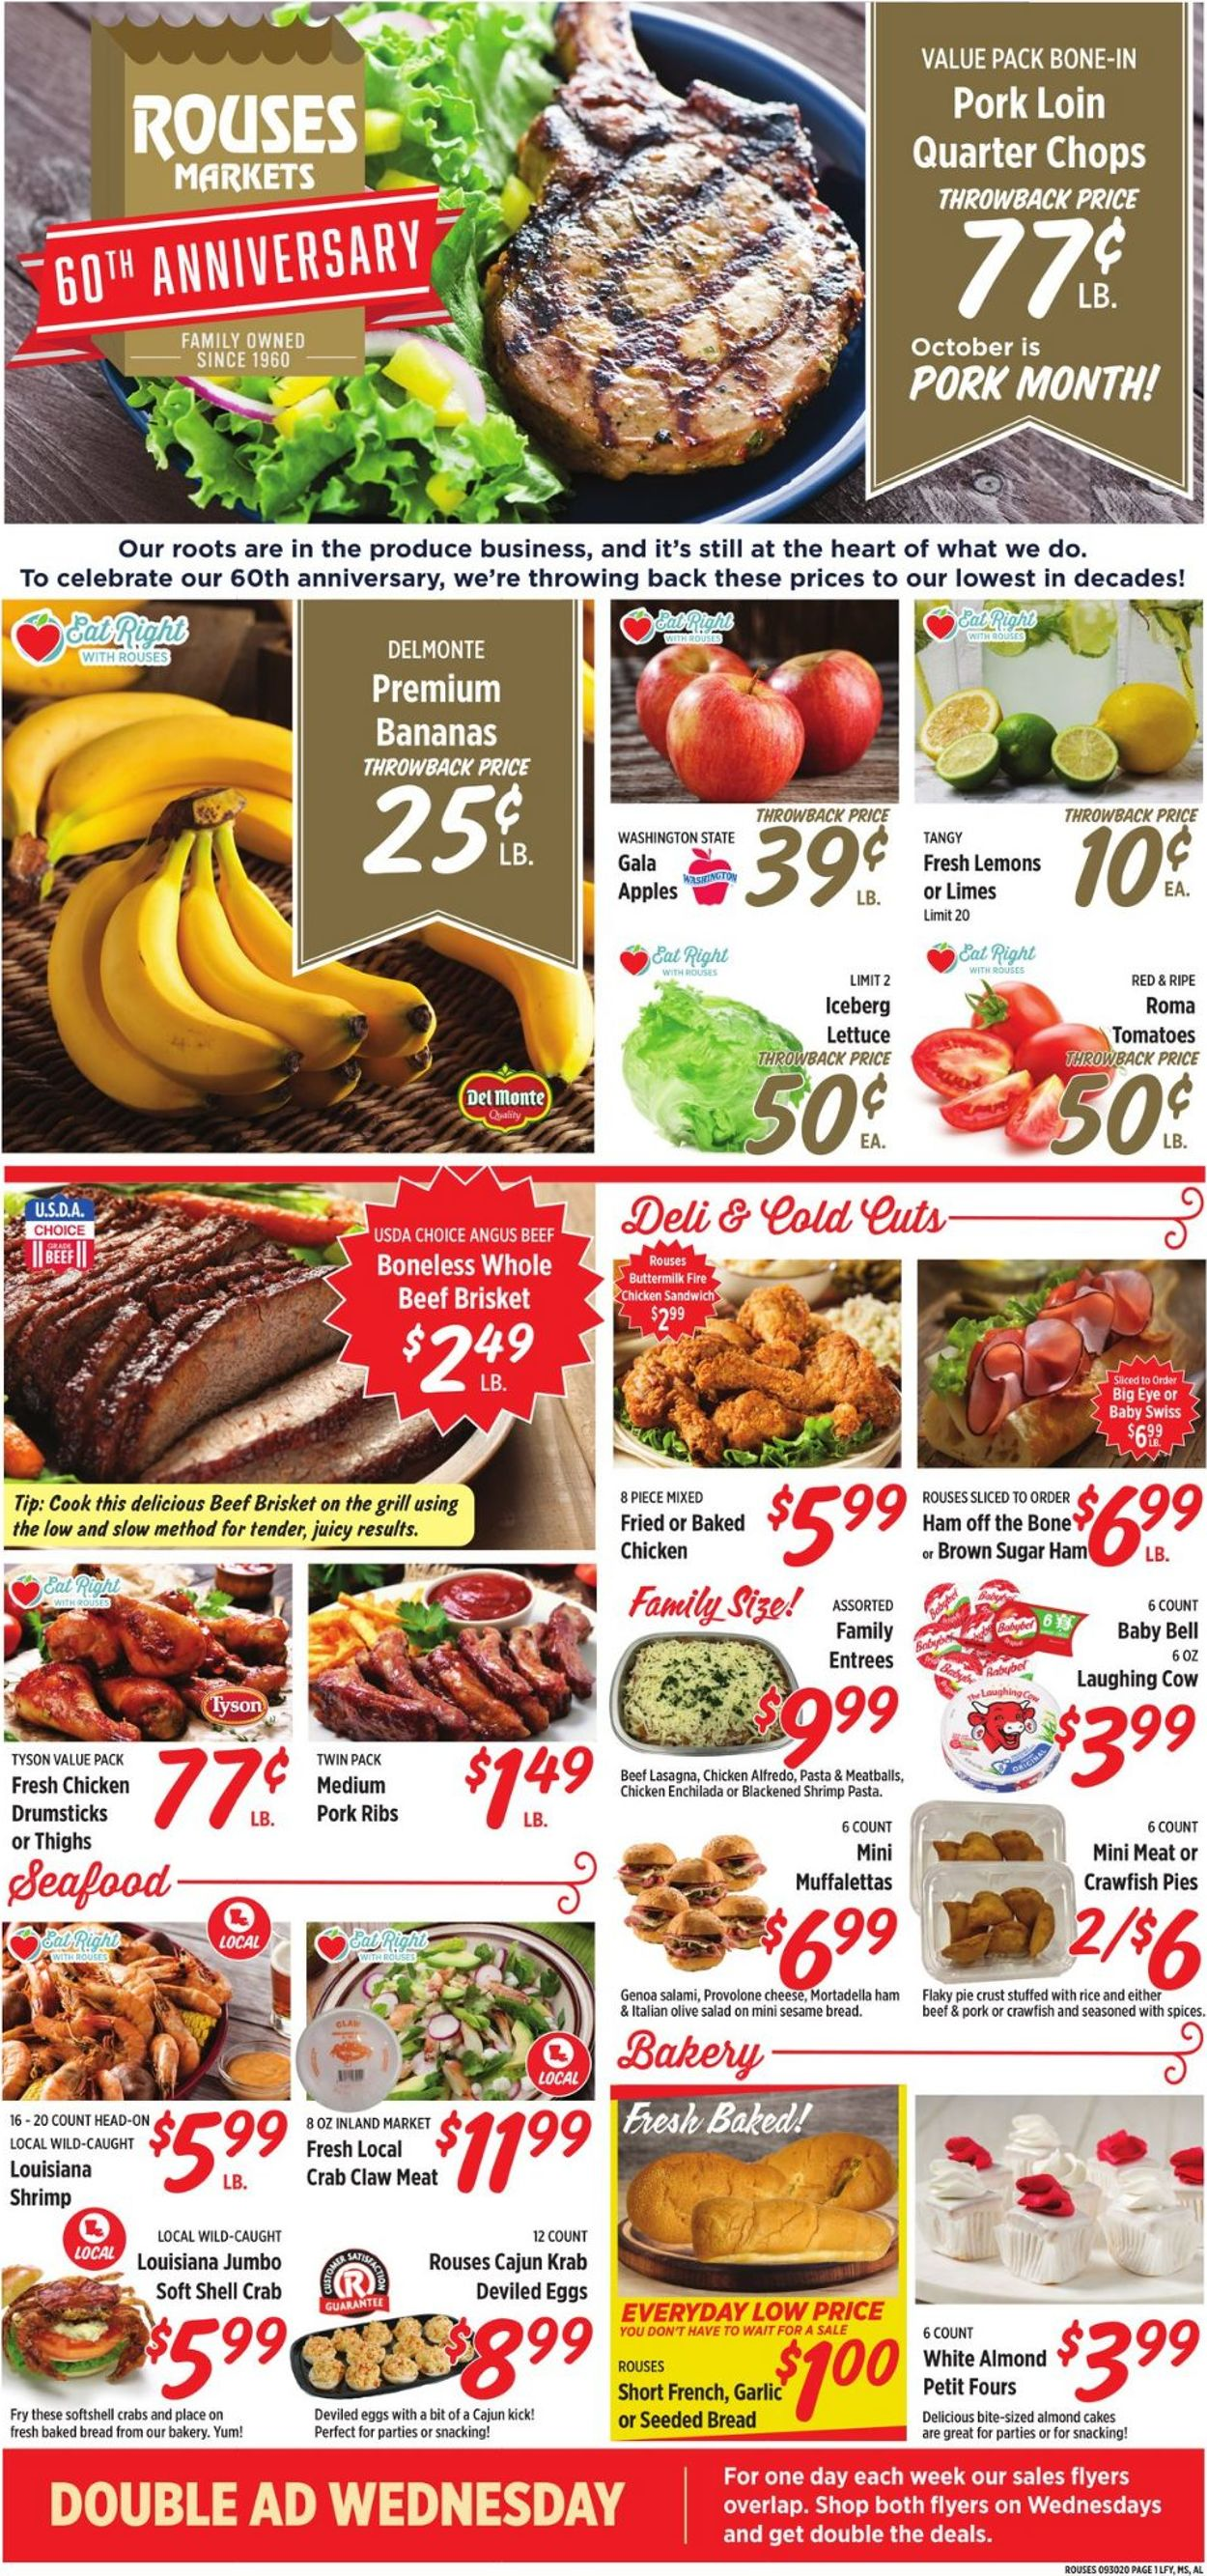 Is Rouses Louisiana Open On Christmas Day 2020 Rouses Current weekly ad 09/30   10/07/2020   frequent ads.com